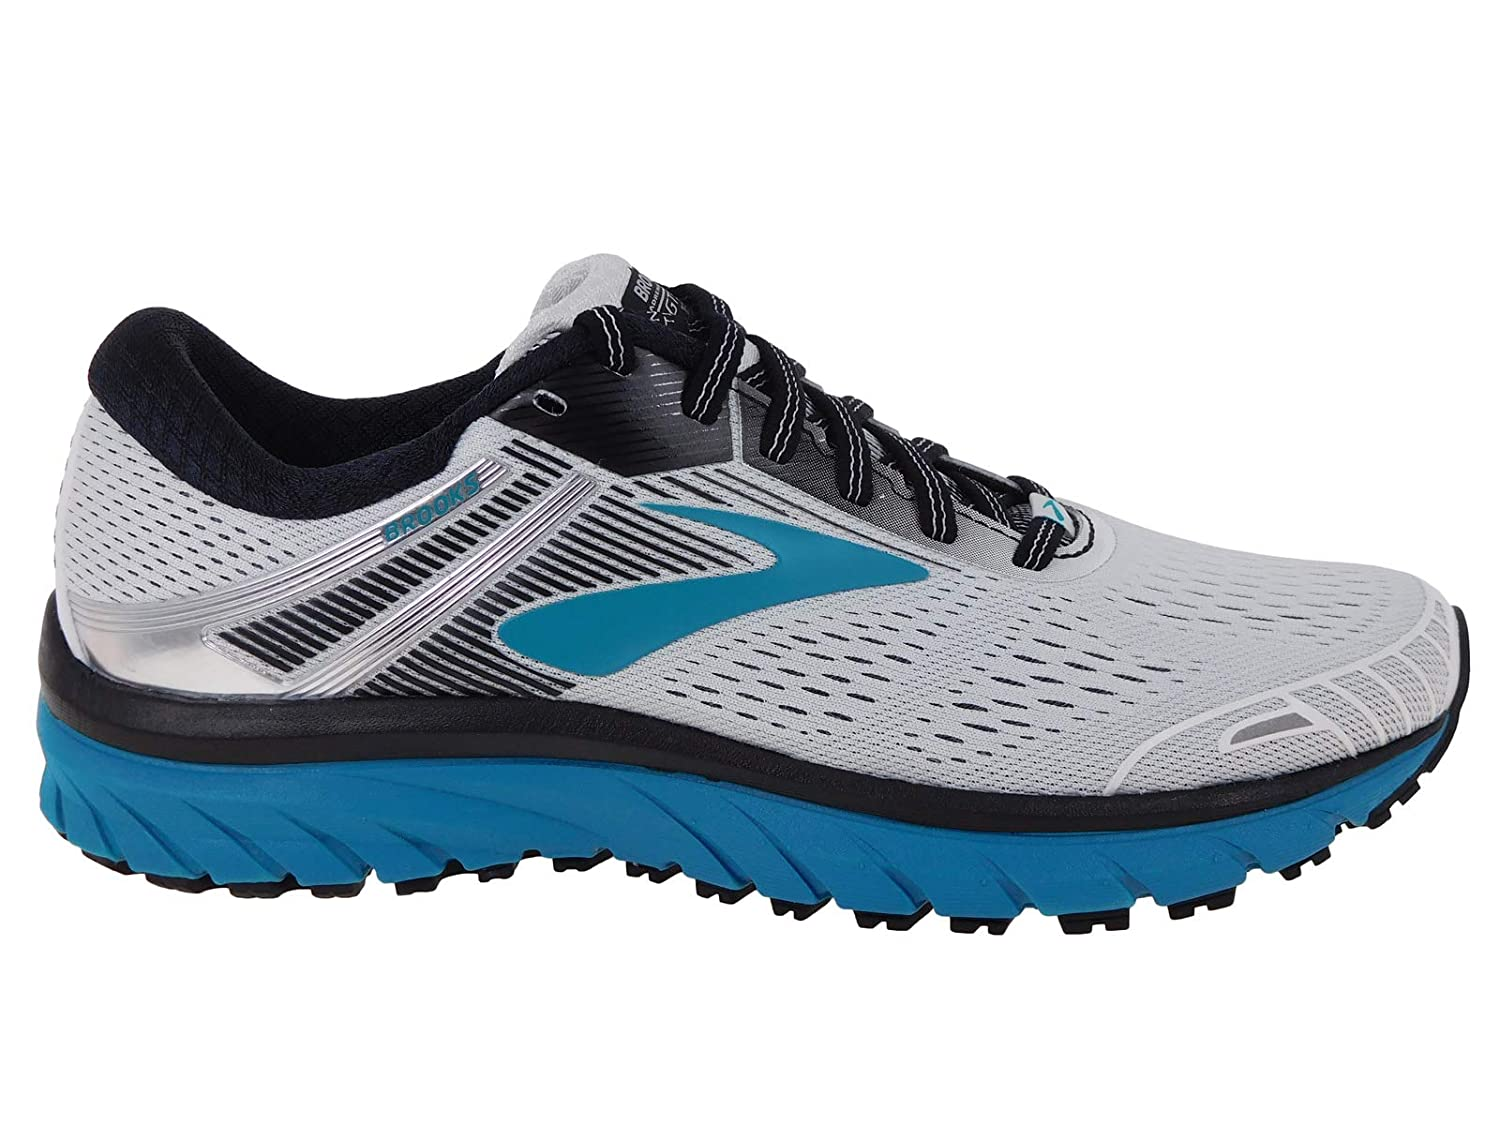 White Black Teal Brooks Womens Adrenaline GTS 18